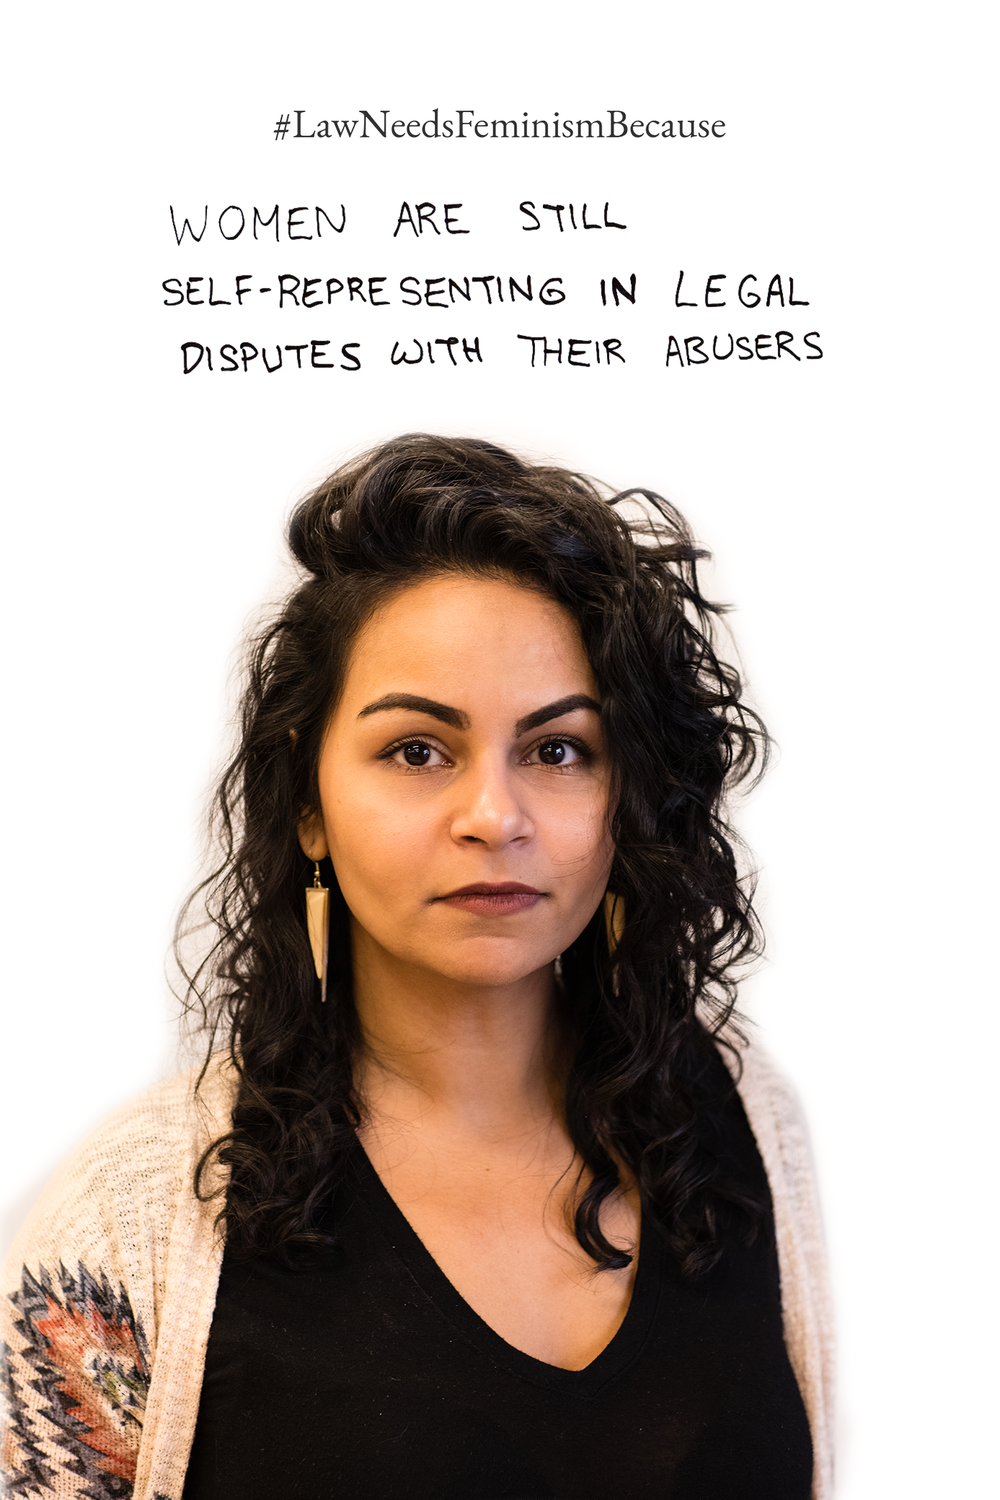 Law Needs Feminism Because  women are still self-representing in legal disputes with their abusers